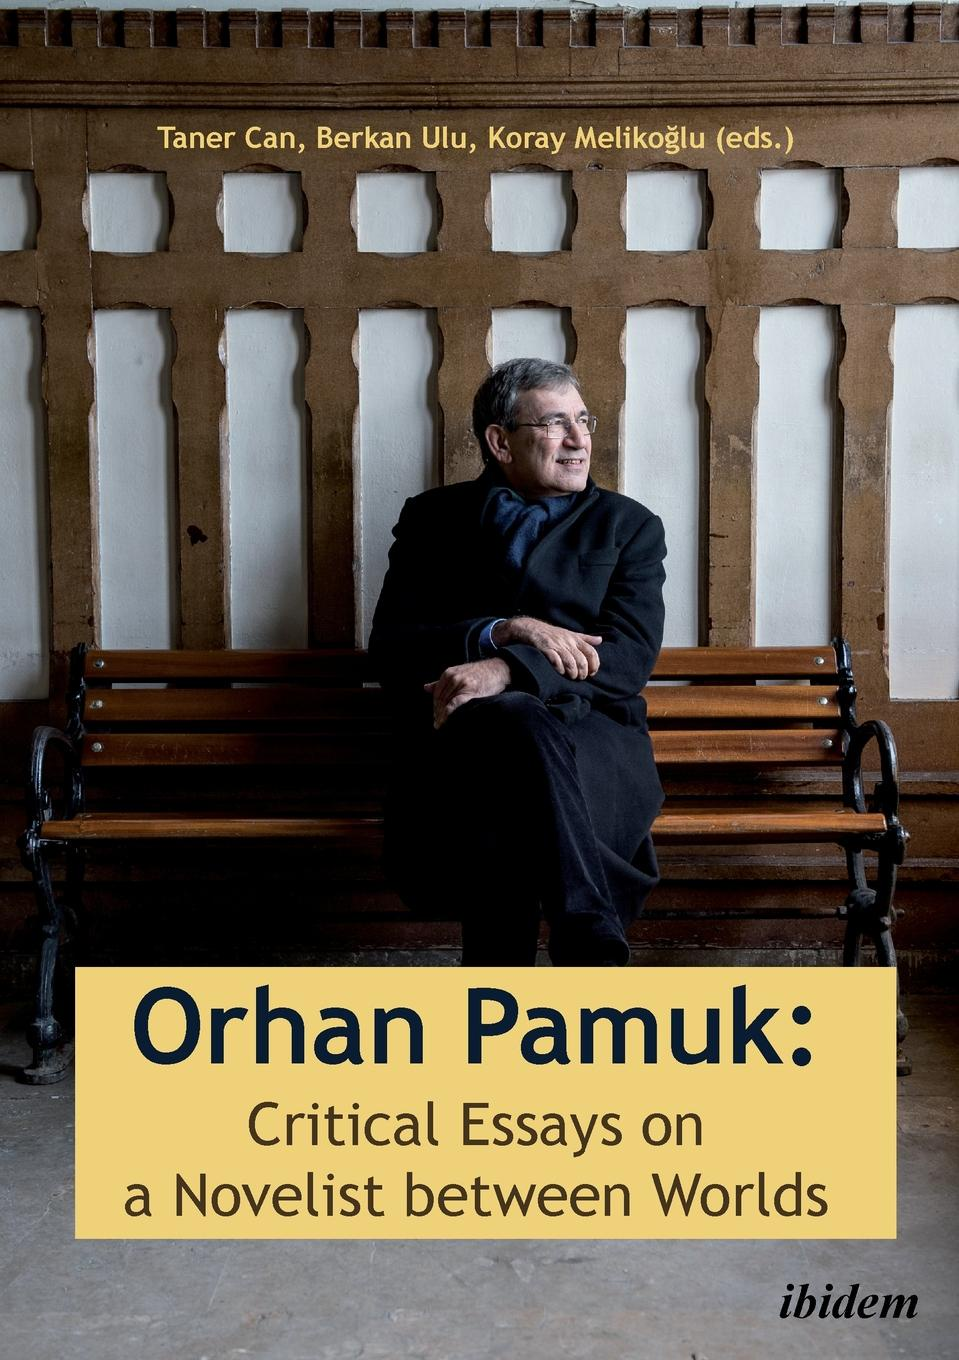 Orhan Pamuk. Critical Essays on a Novelist between Worlds . A Collection of Essays on Orhan Pamuk john tyndall essays on the floating matter of the air in relation to putrefaction and infection